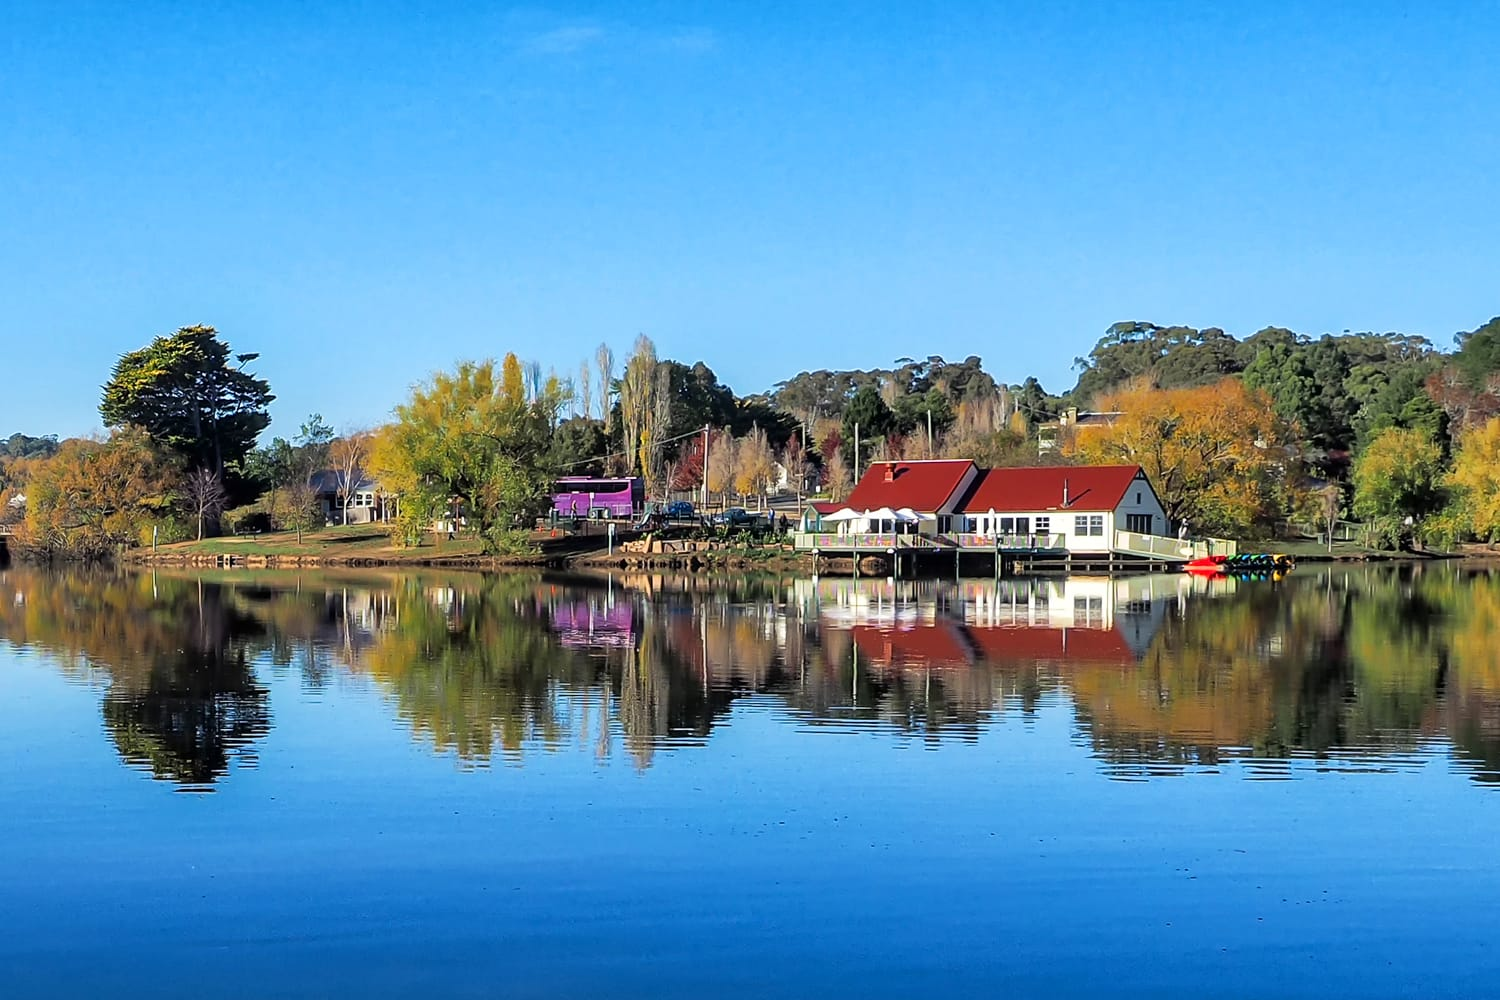 Lake Daylesford in Australia